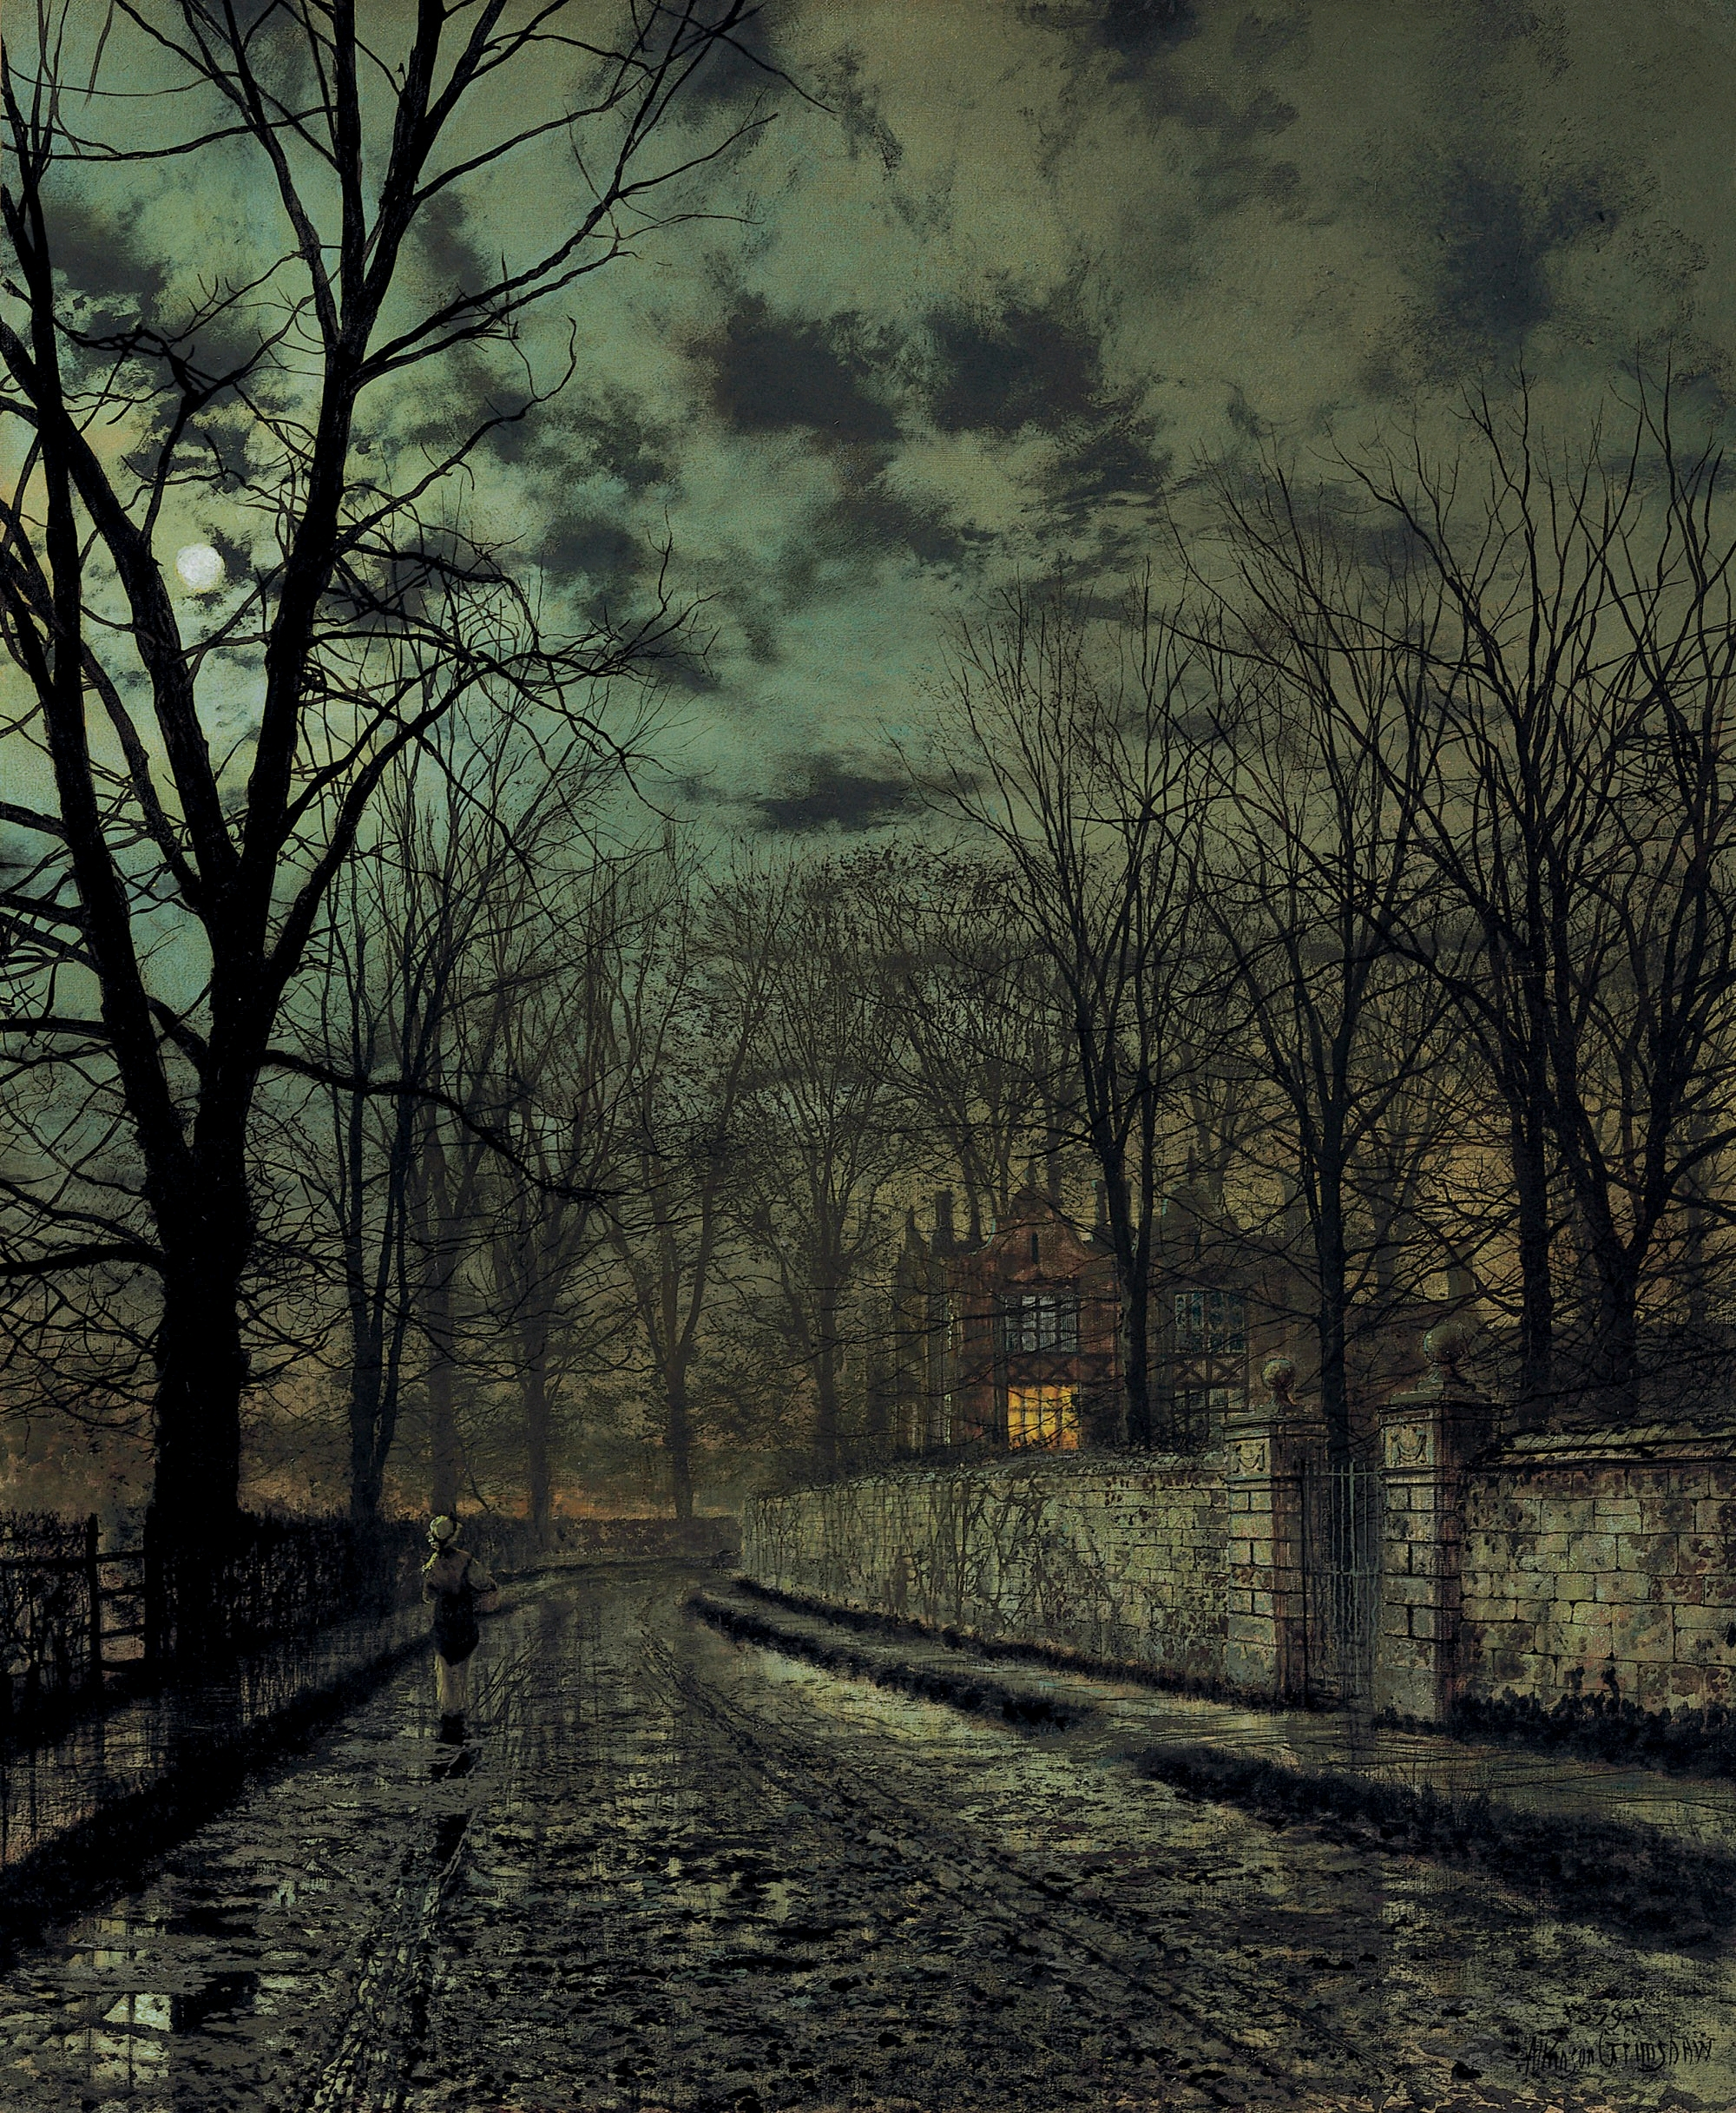 Grimshaw - November, 1879